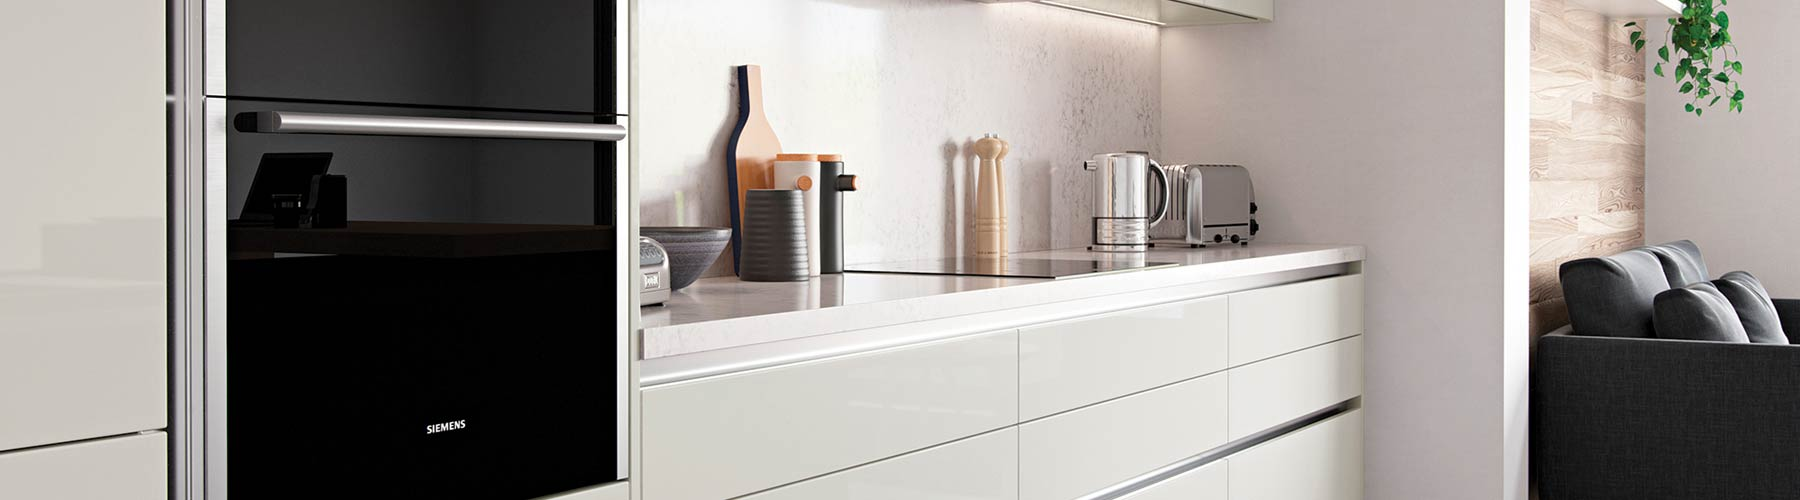 Gloss cream handle-less kitchen with white Corian worktop and integrated kitchen appliances.